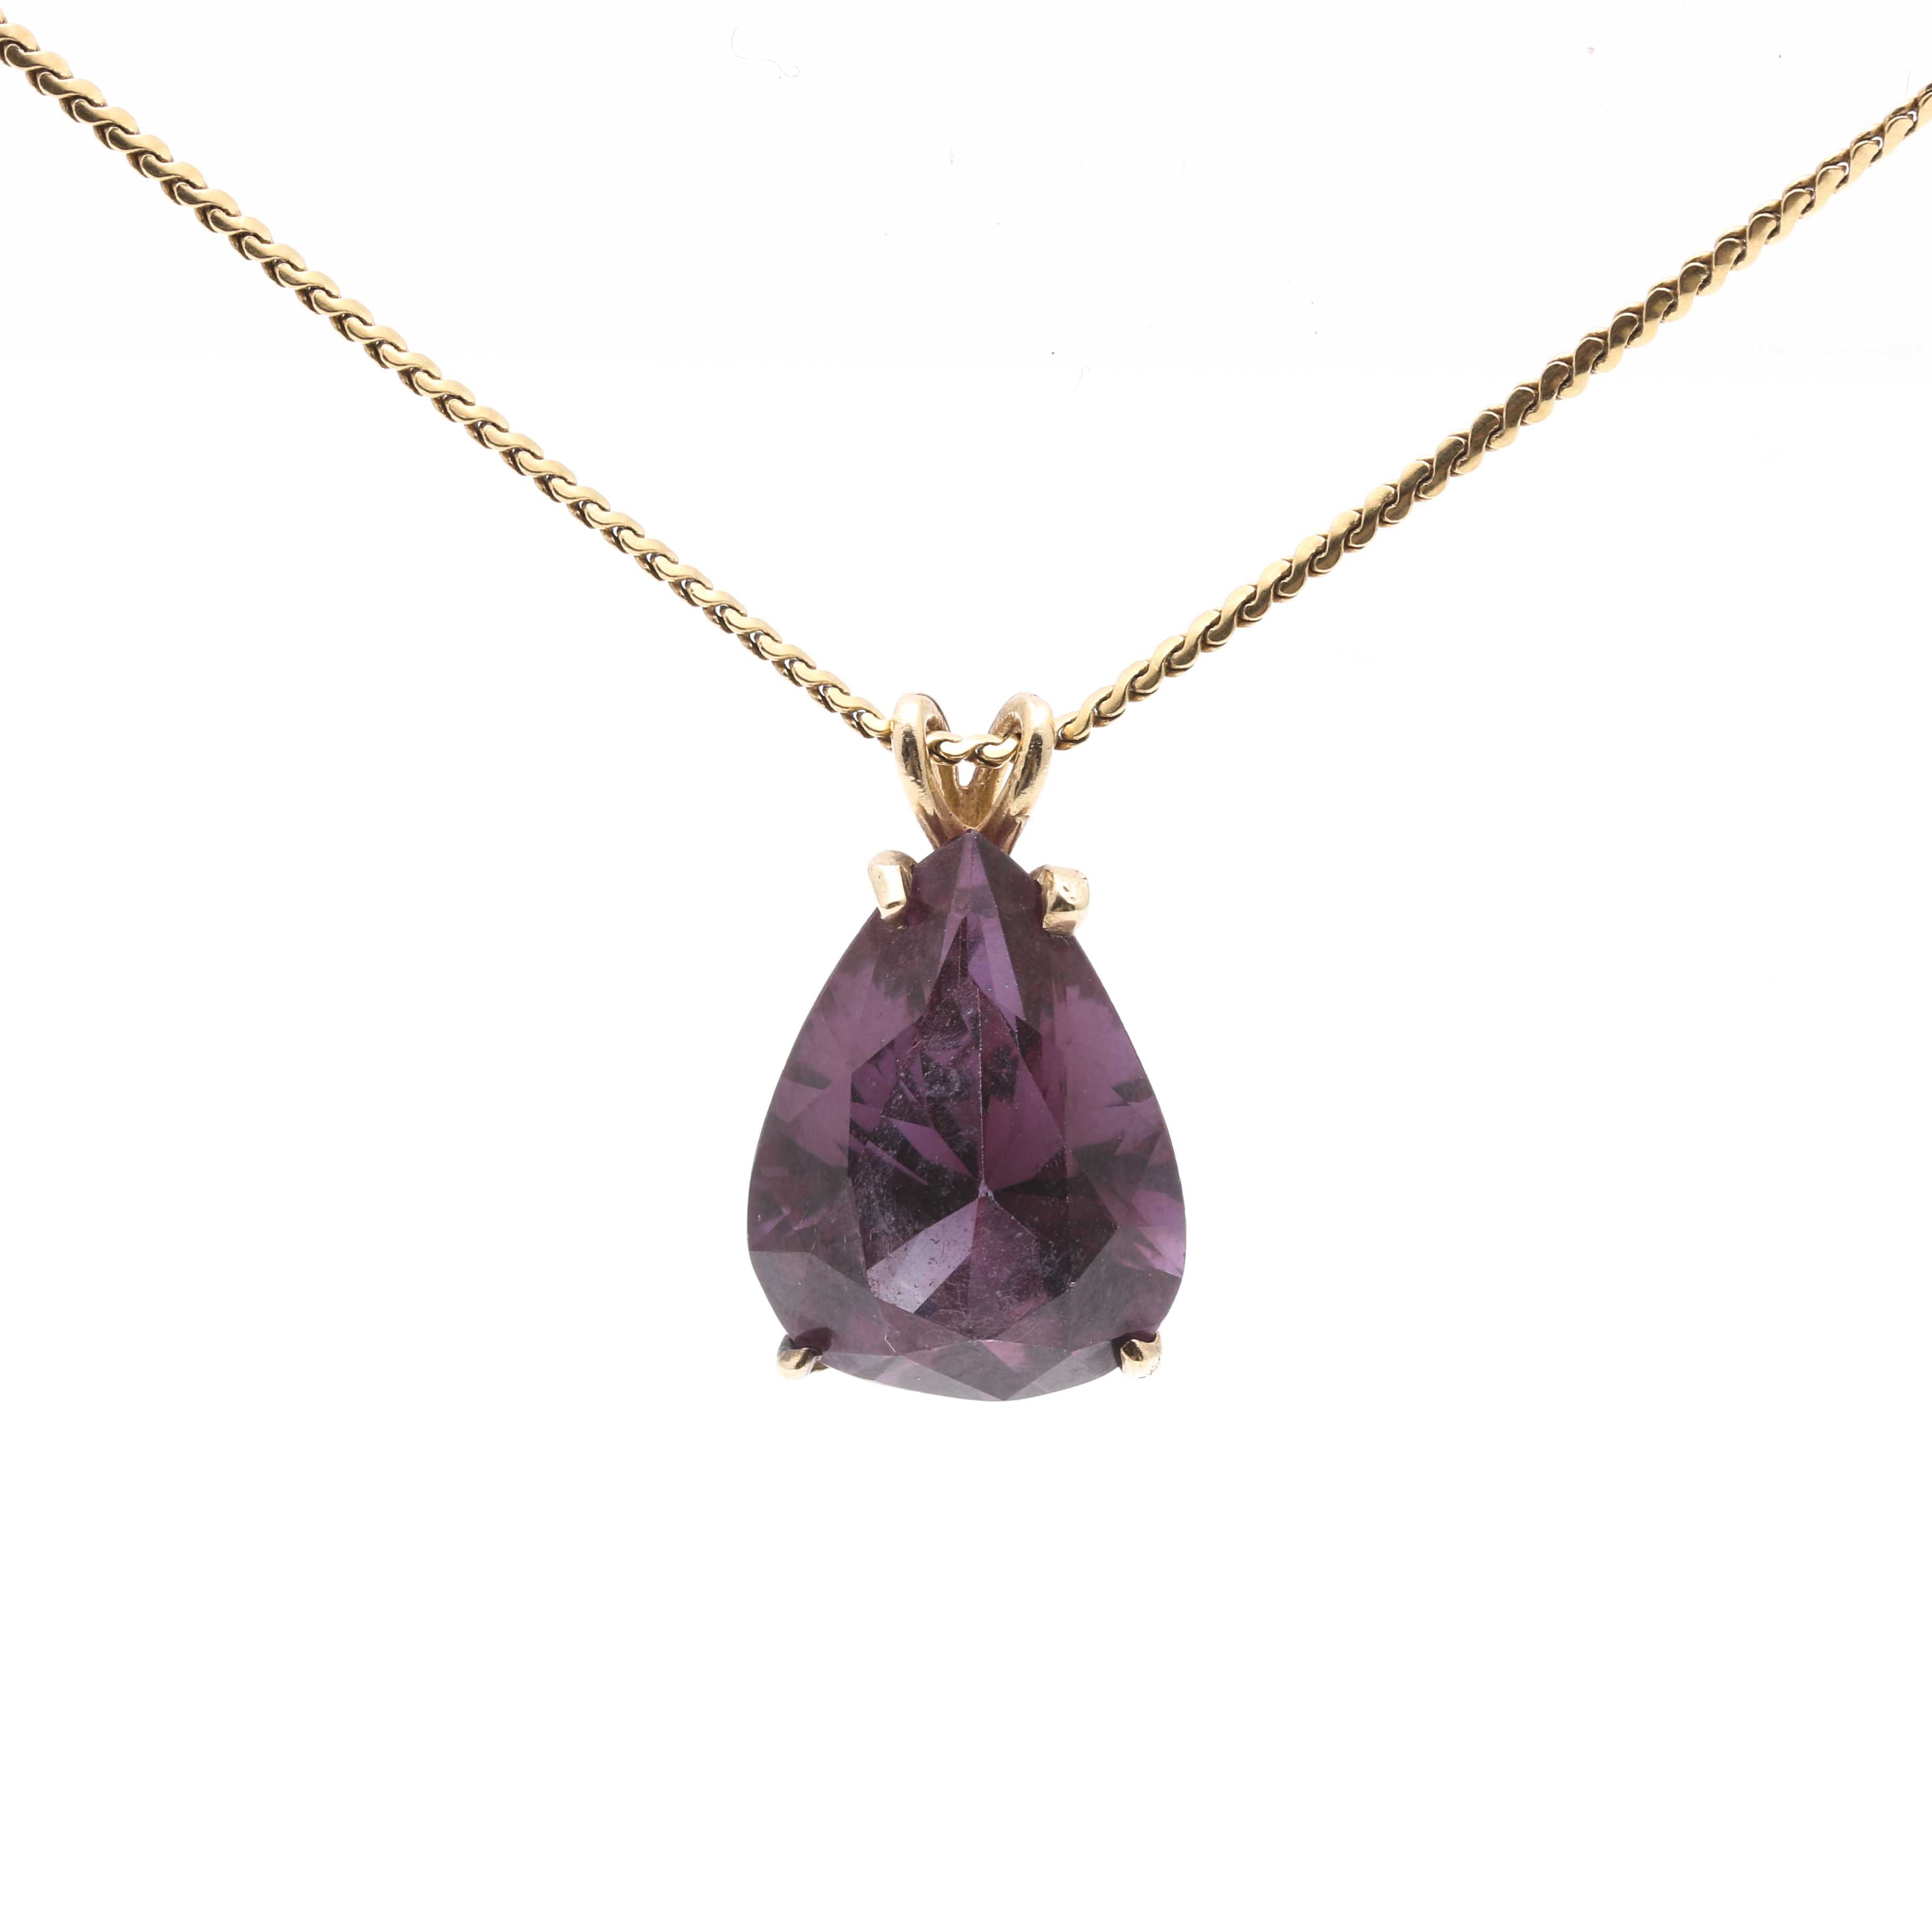 14K Yellow Gold Sapphire Pendant and 18K Yellow Gold Chain